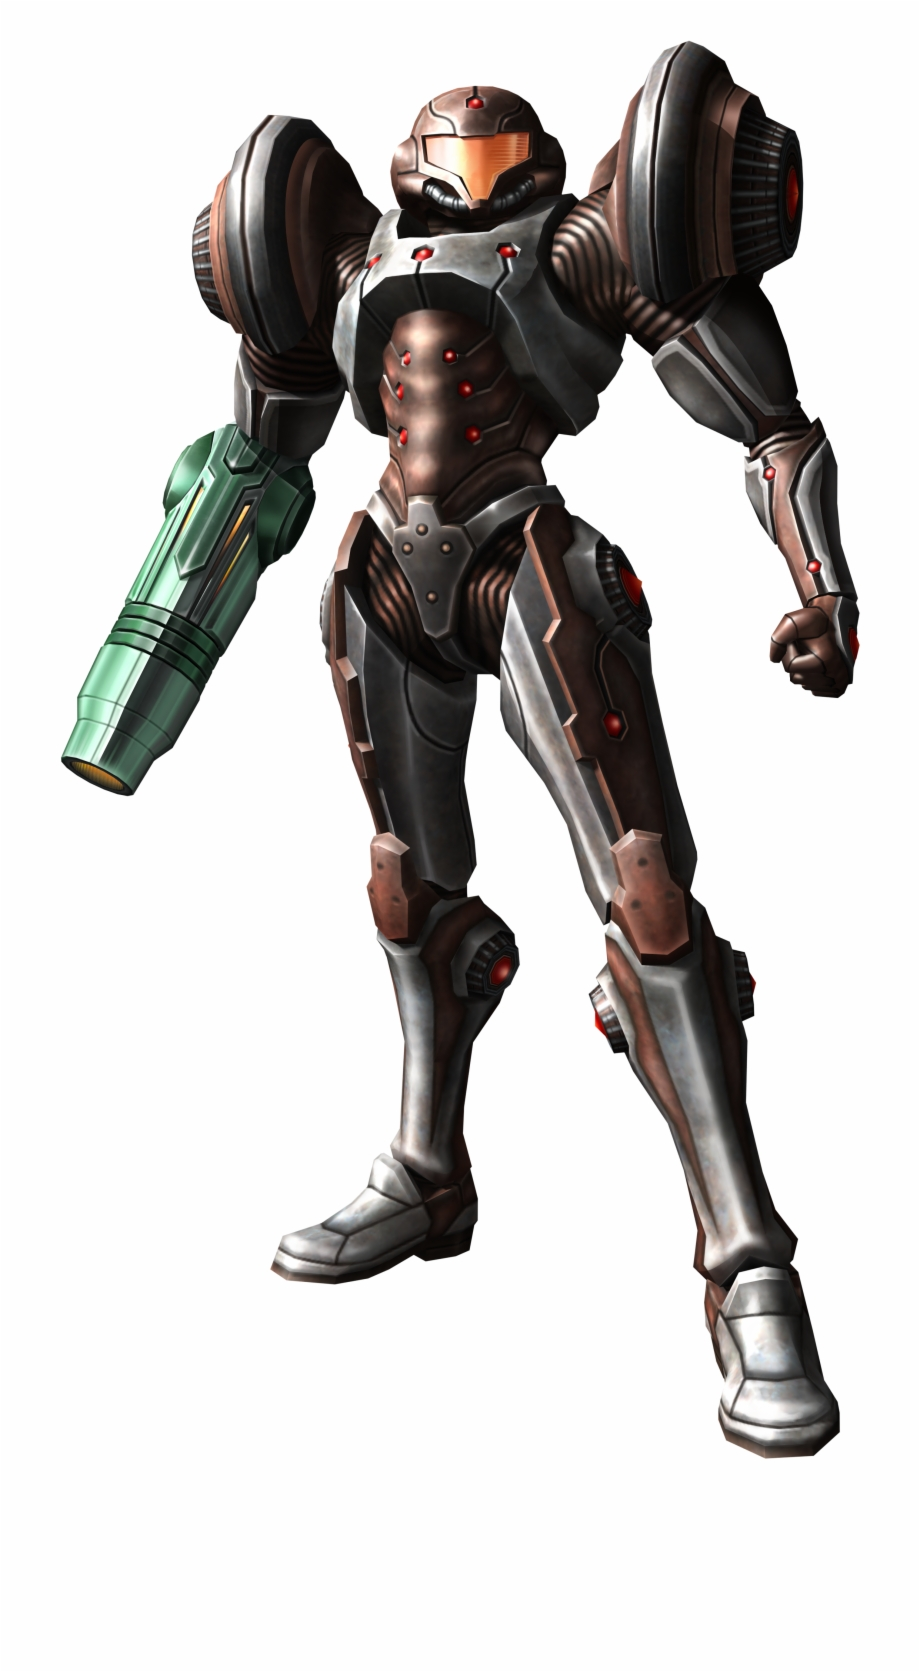 Metroid prime 4 clipart graphic library Metroid Prime - Metroid Prime 2 Echoes Dark Suit Free PNG ... graphic library